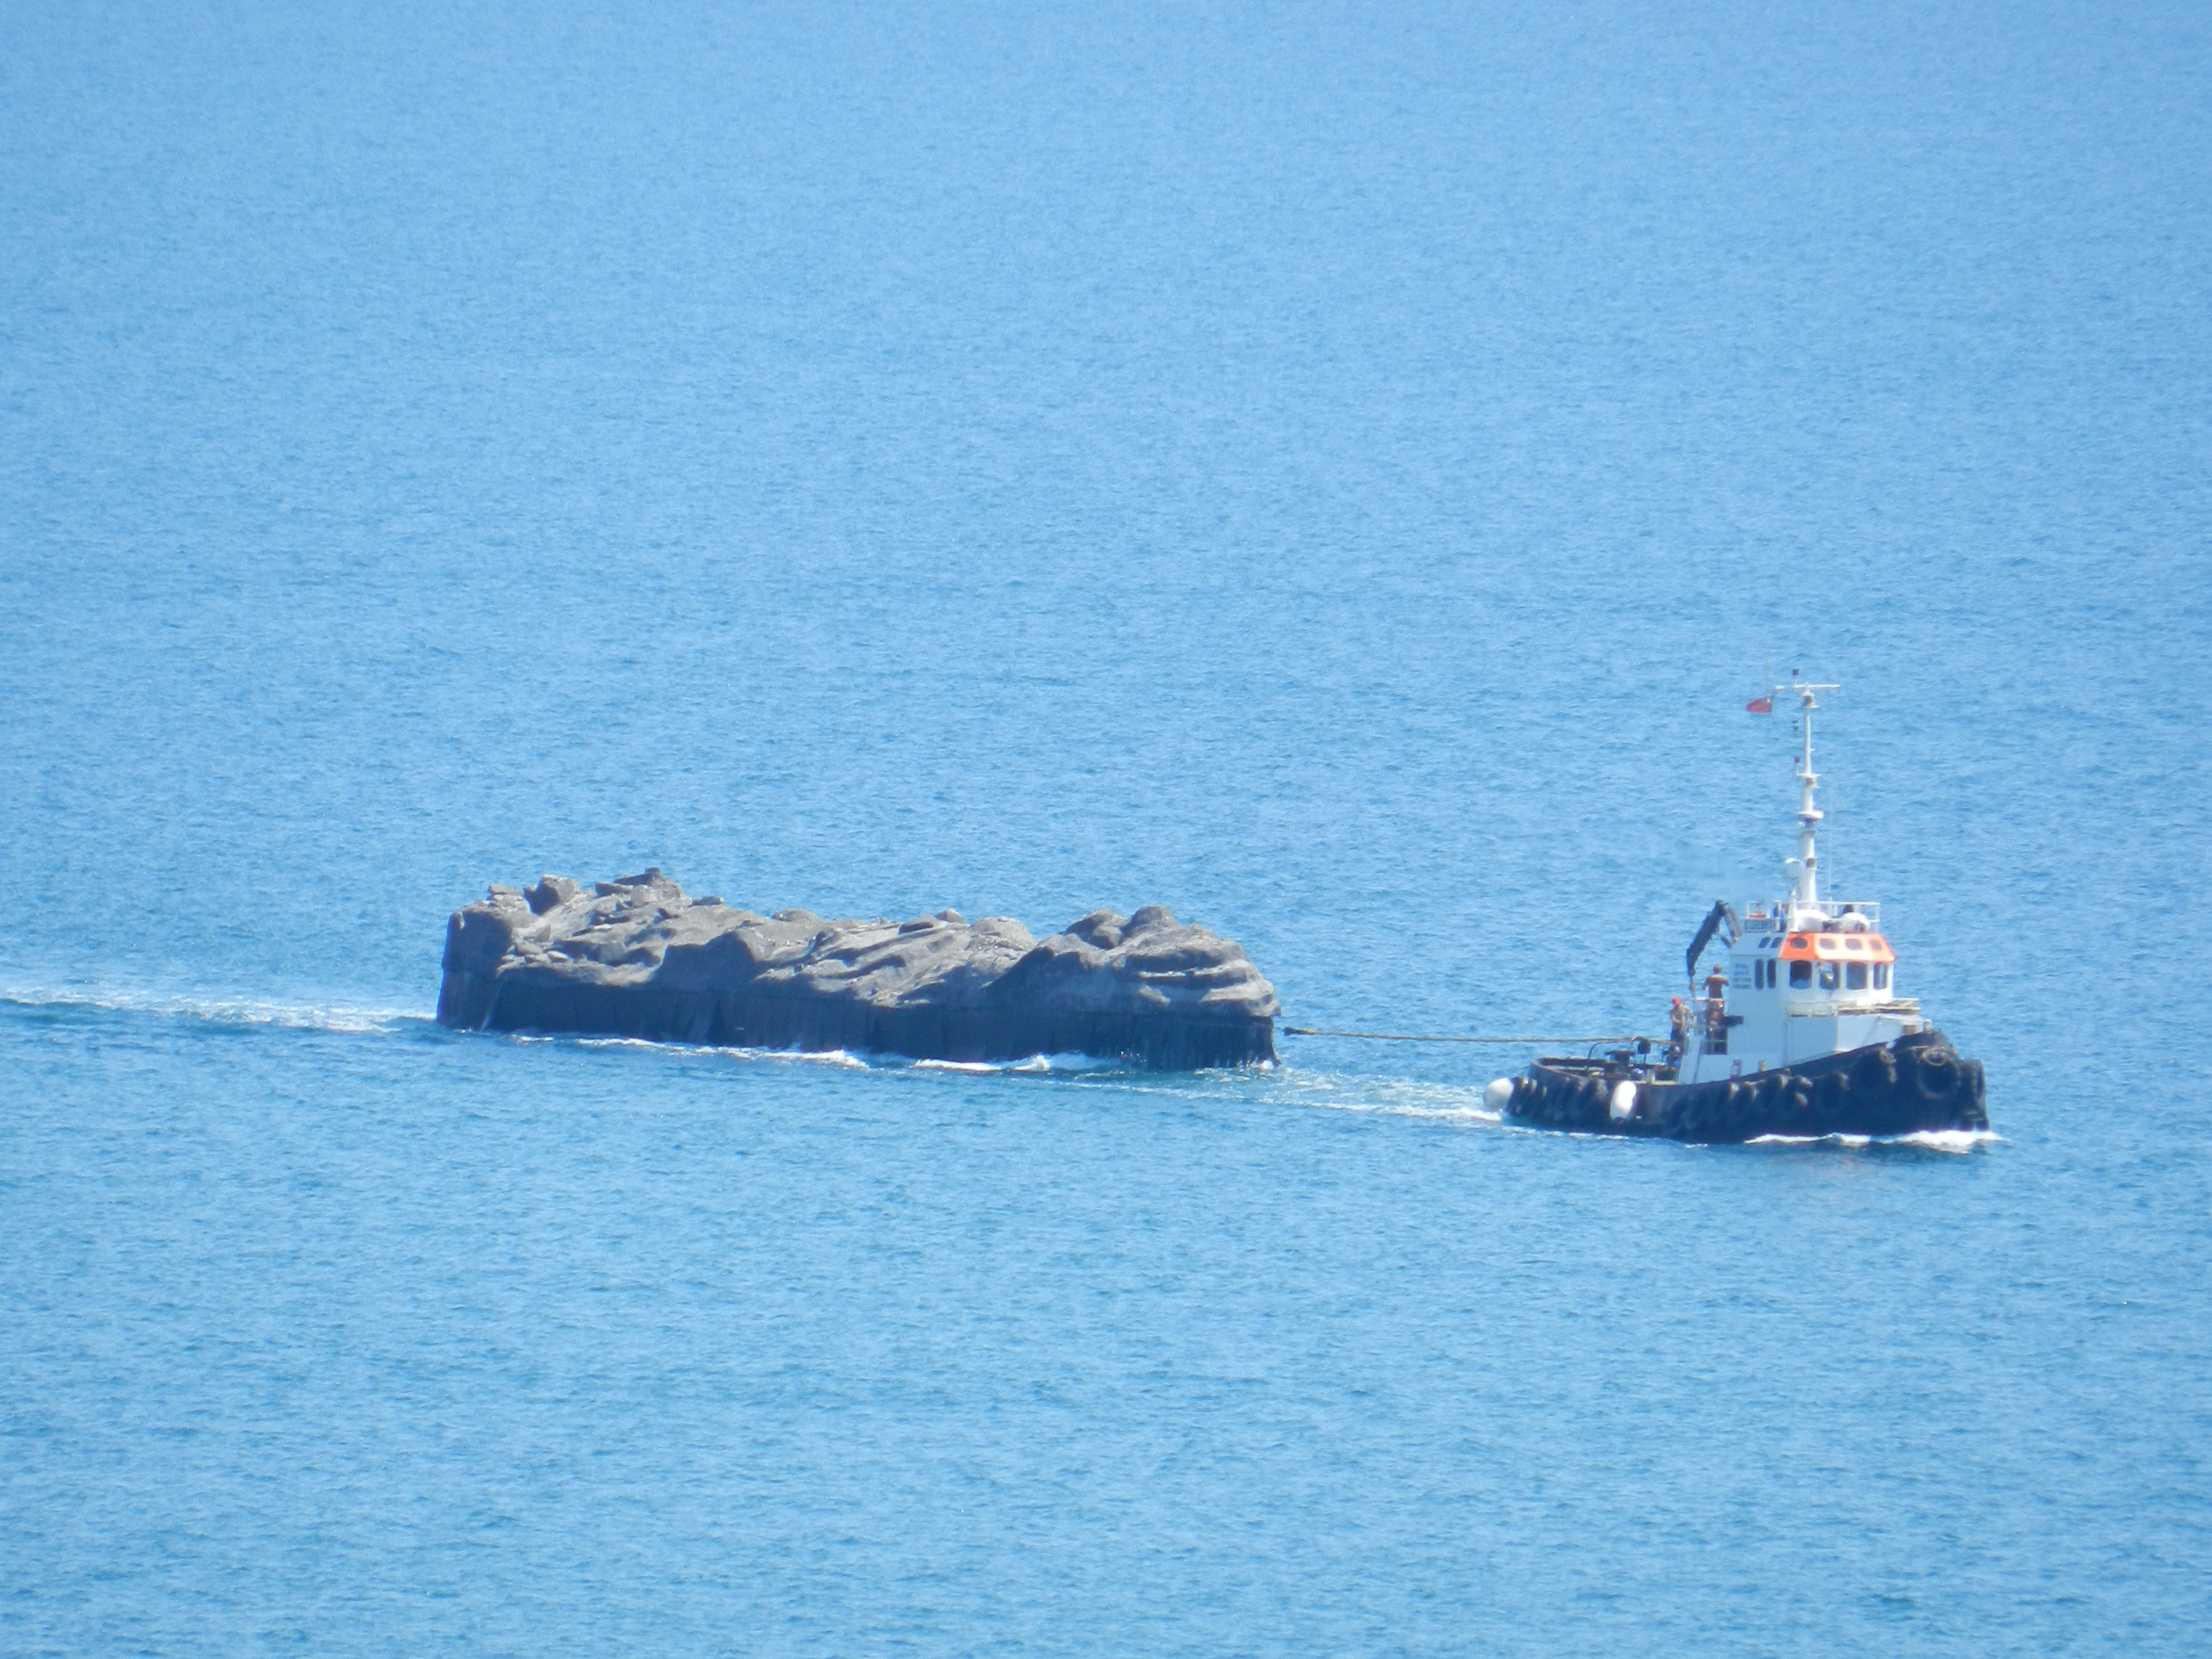 Nowhereisland arrived into Weymouth Bay to a rousing welcome by many supporters